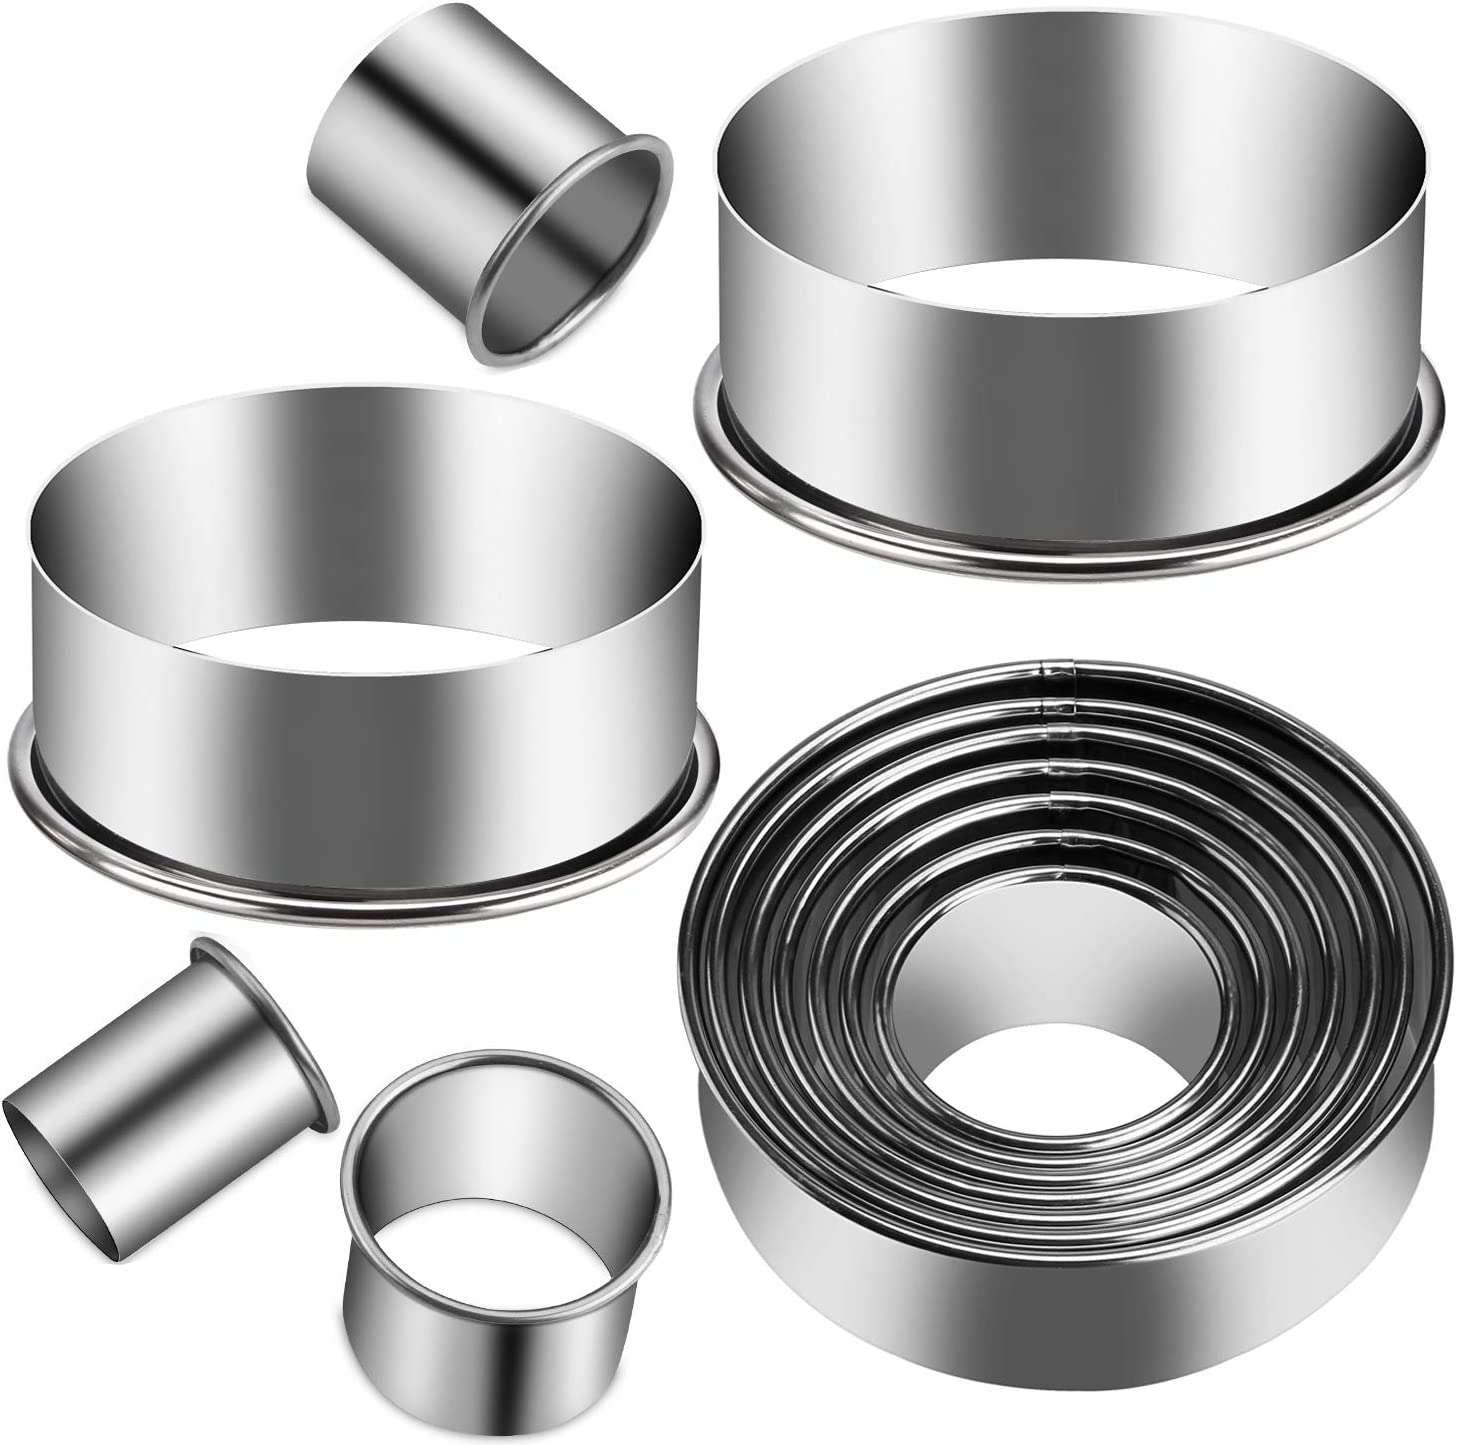 KSPOWWIN 12 Pieces Stainless Steel Cookie Cutter Set Biscuit Plain Edge Round Cutters Metal Ring Baking Molds, Stainless Steel Cookie And Dough Biscuit Muffins Cutters in Graduated Sizes